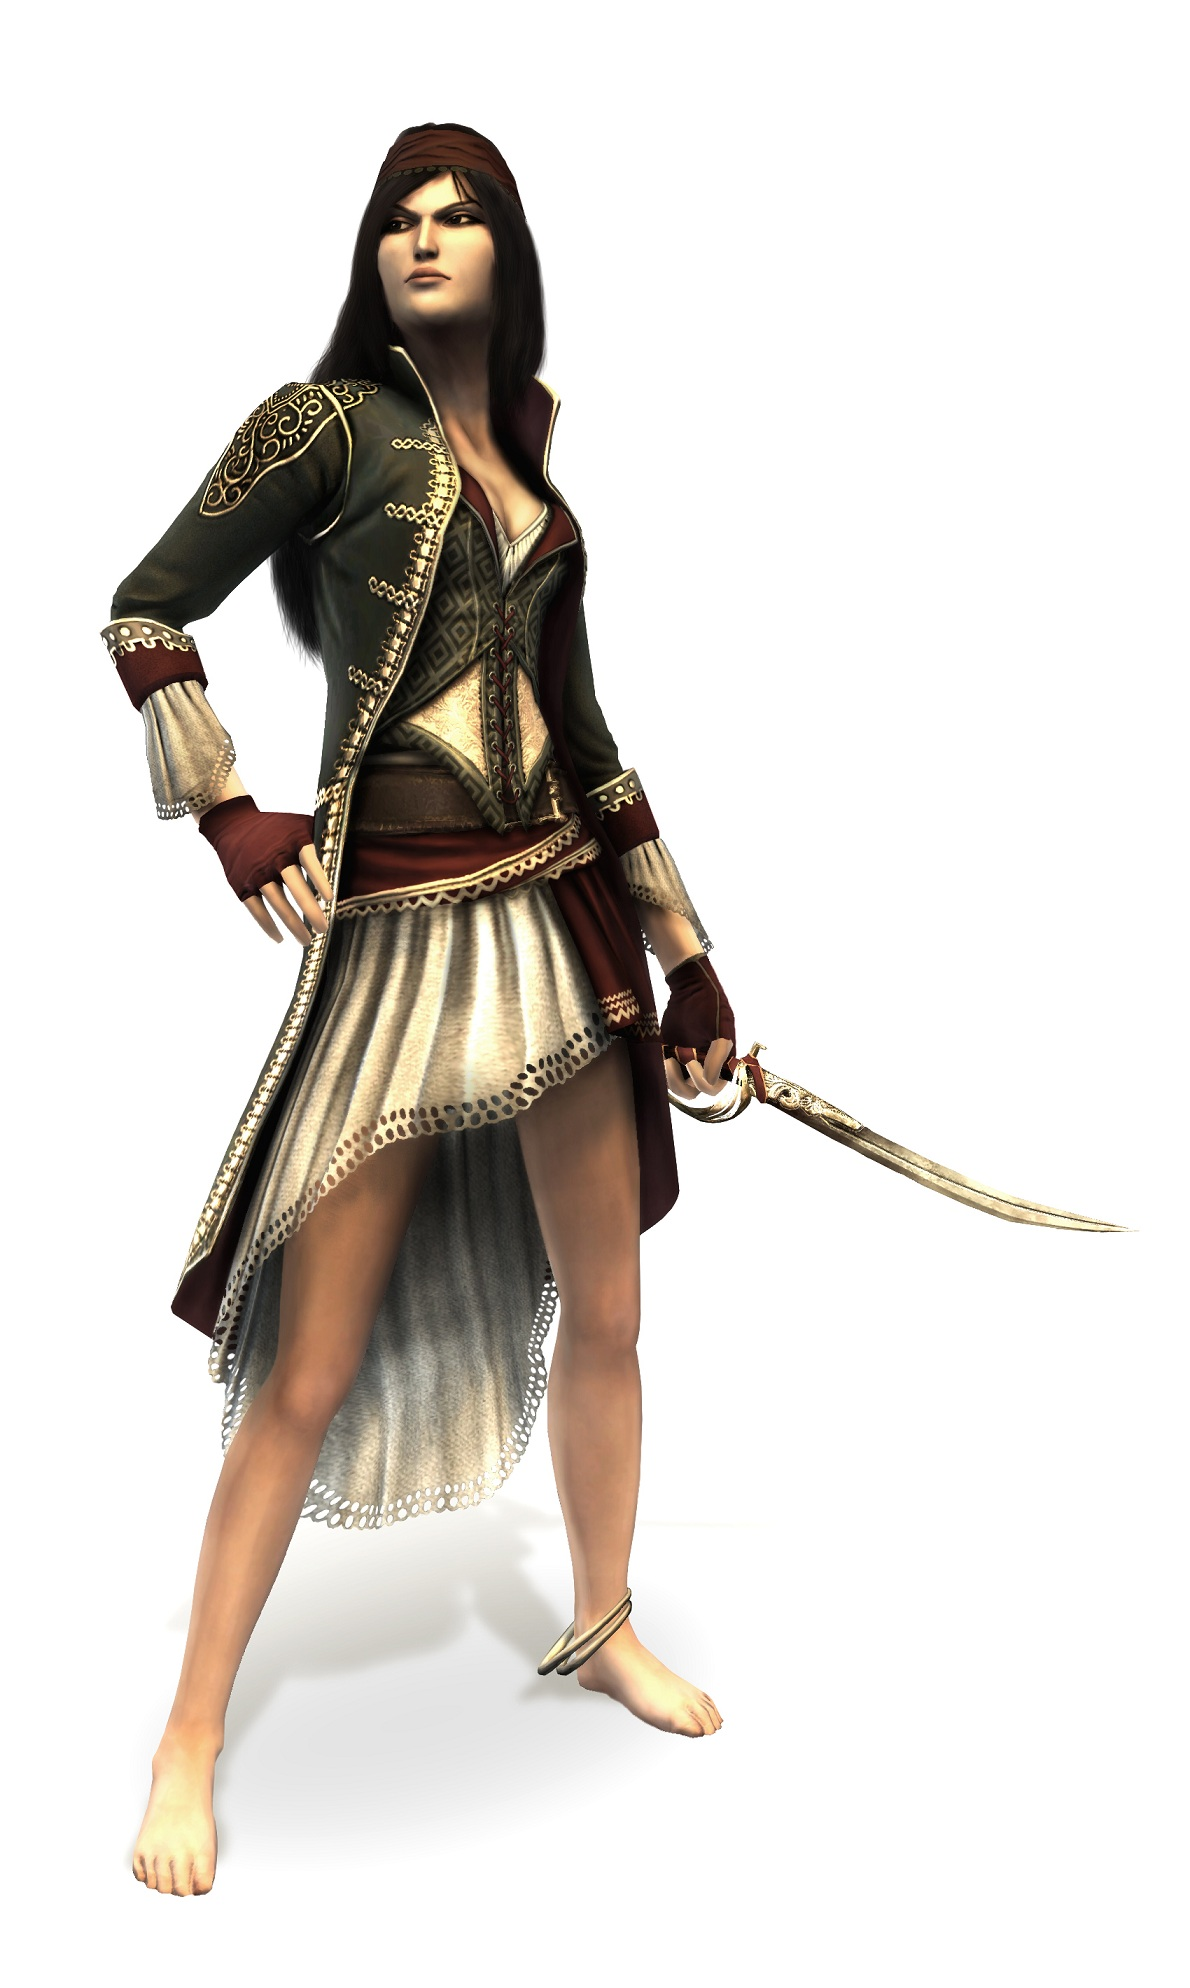 4c03fea488d Corsair   Assassin's Creed Wiki   FANDOM powered by Wikia